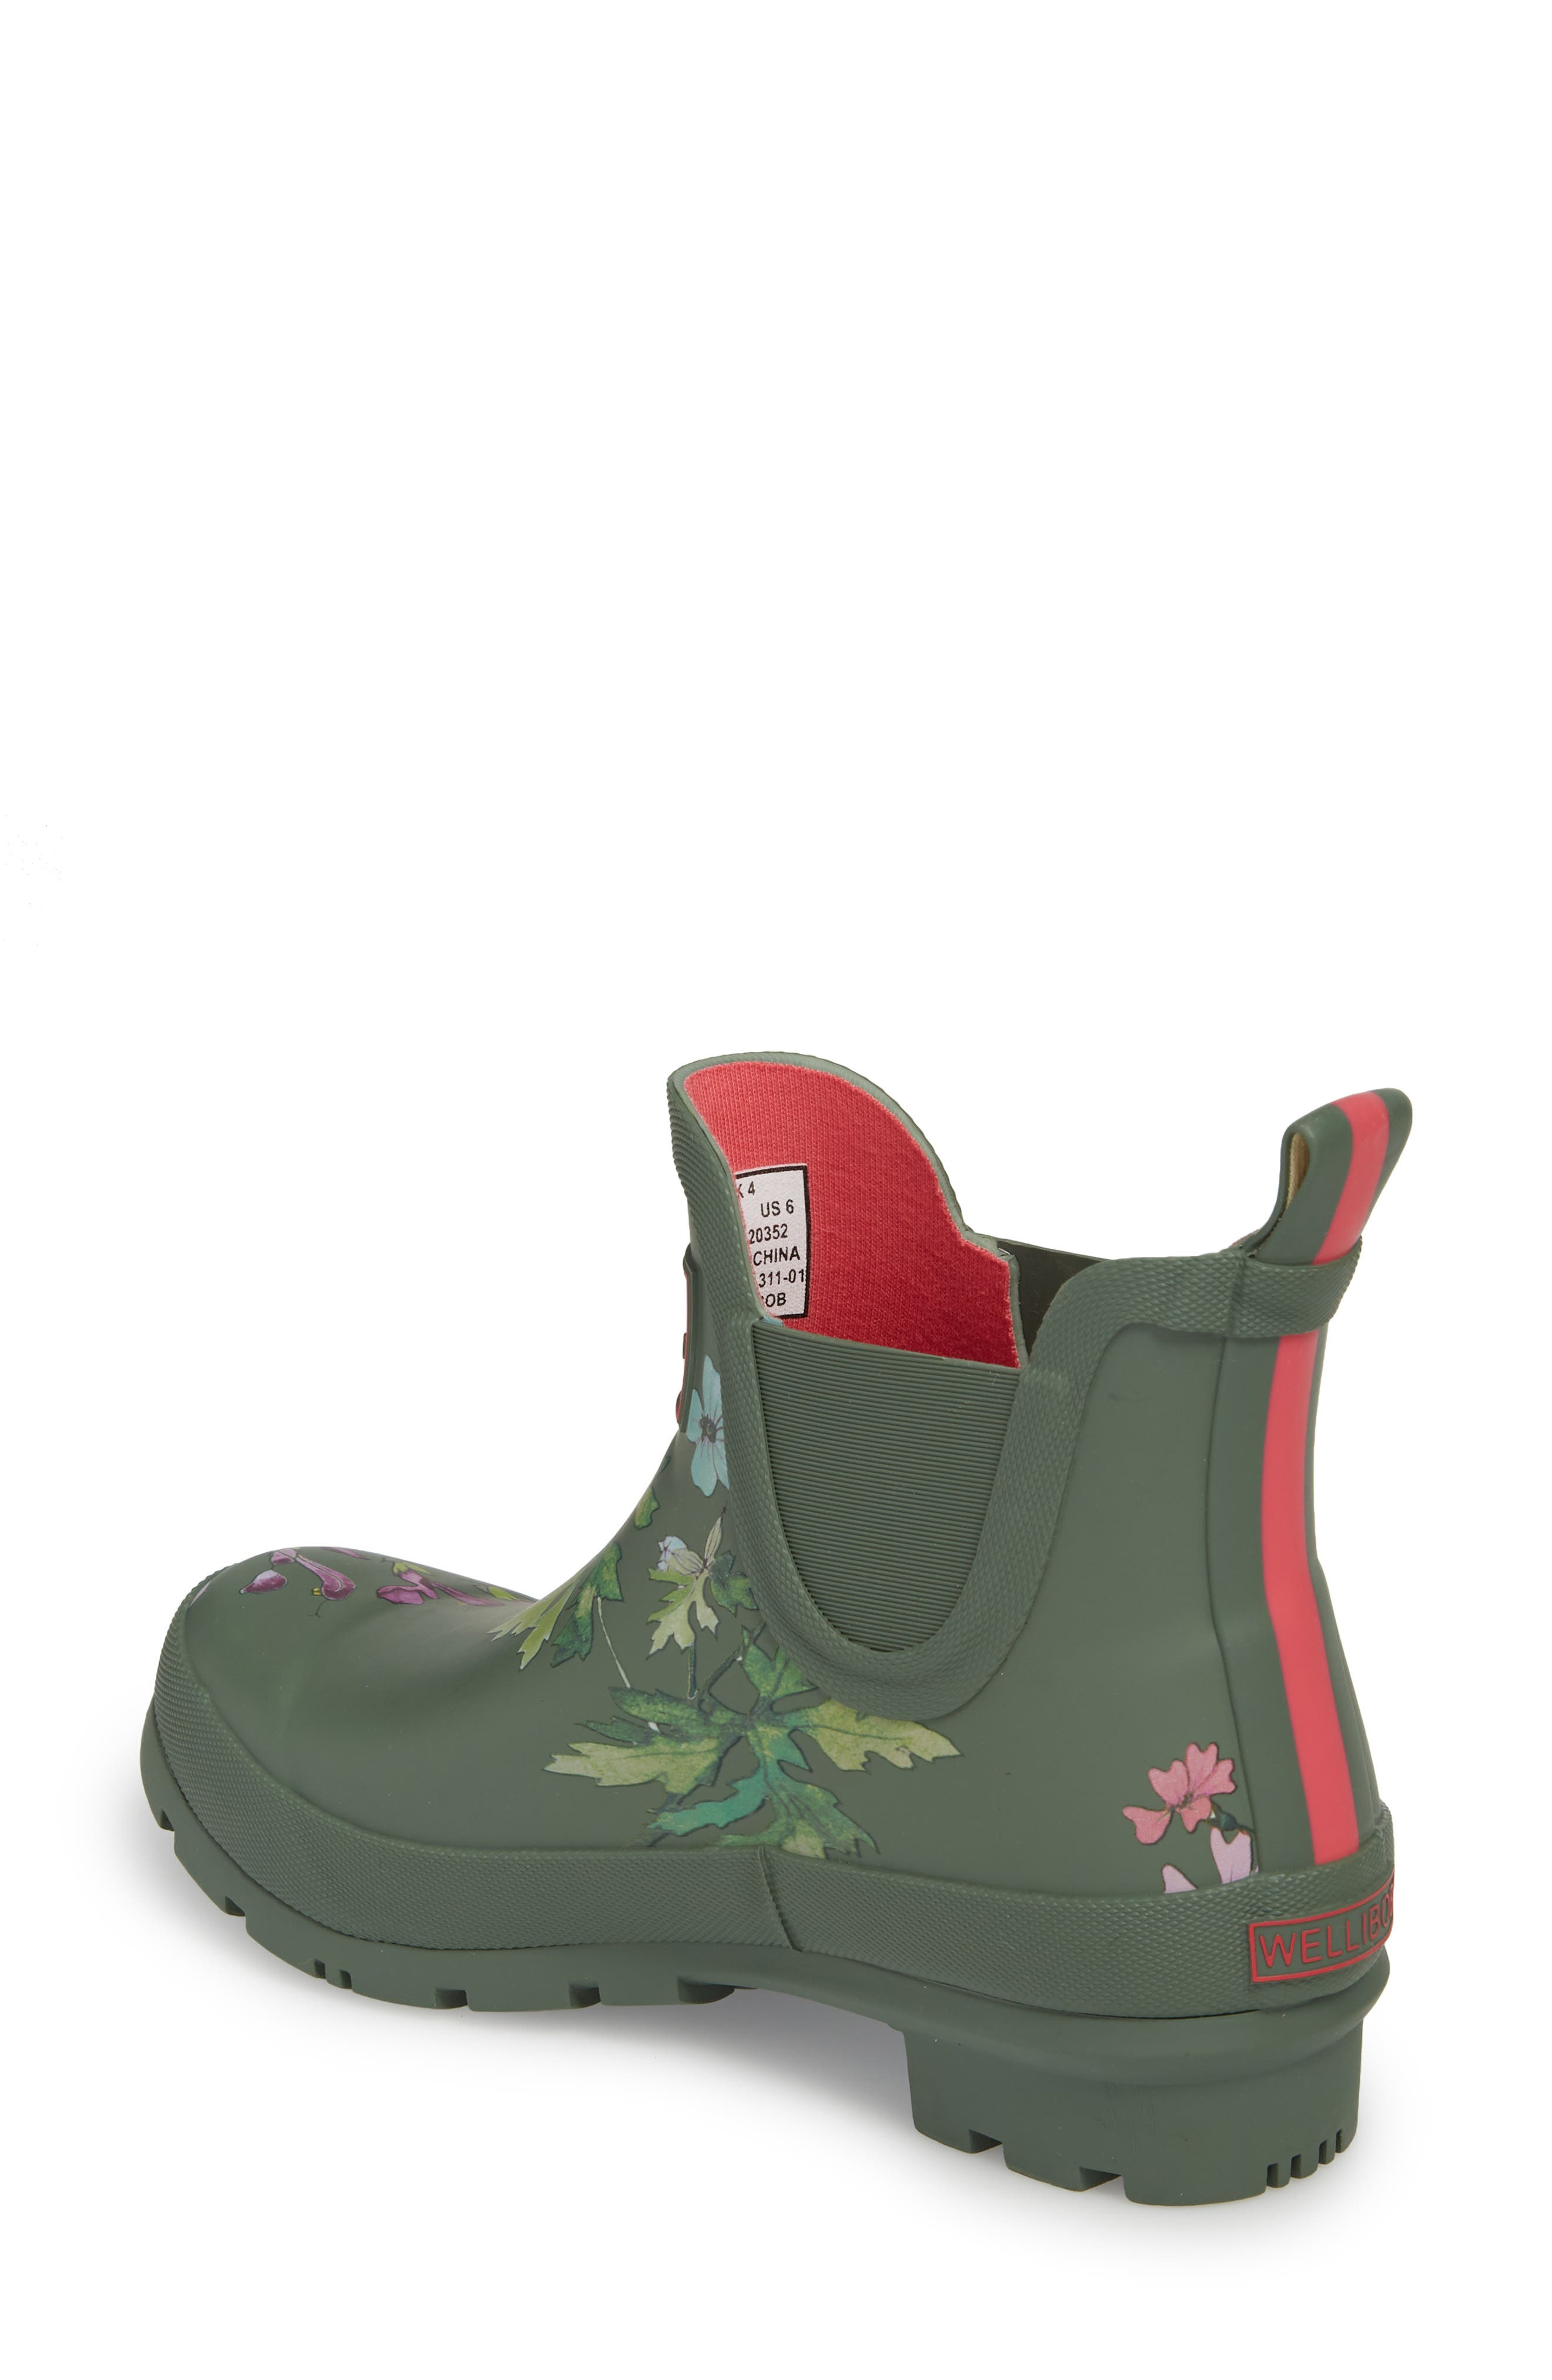 'Wellibob' Short Rain Boot,                             Alternate thumbnail 2, color,                             Laurel Botanical